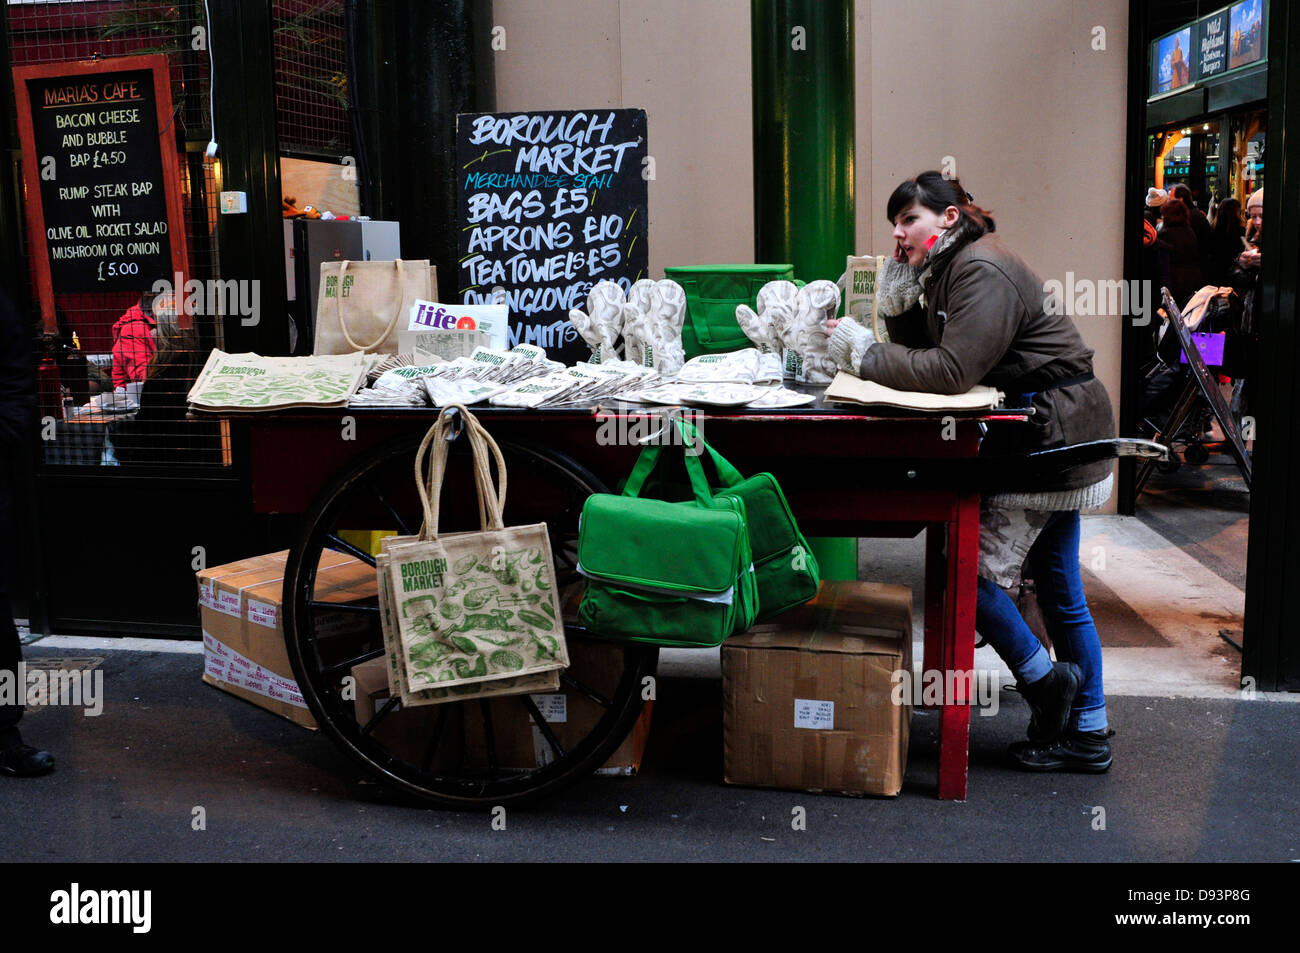 A woman selling shopping bags and aprons from a cart in Borough market, London, UK. - Stock Image